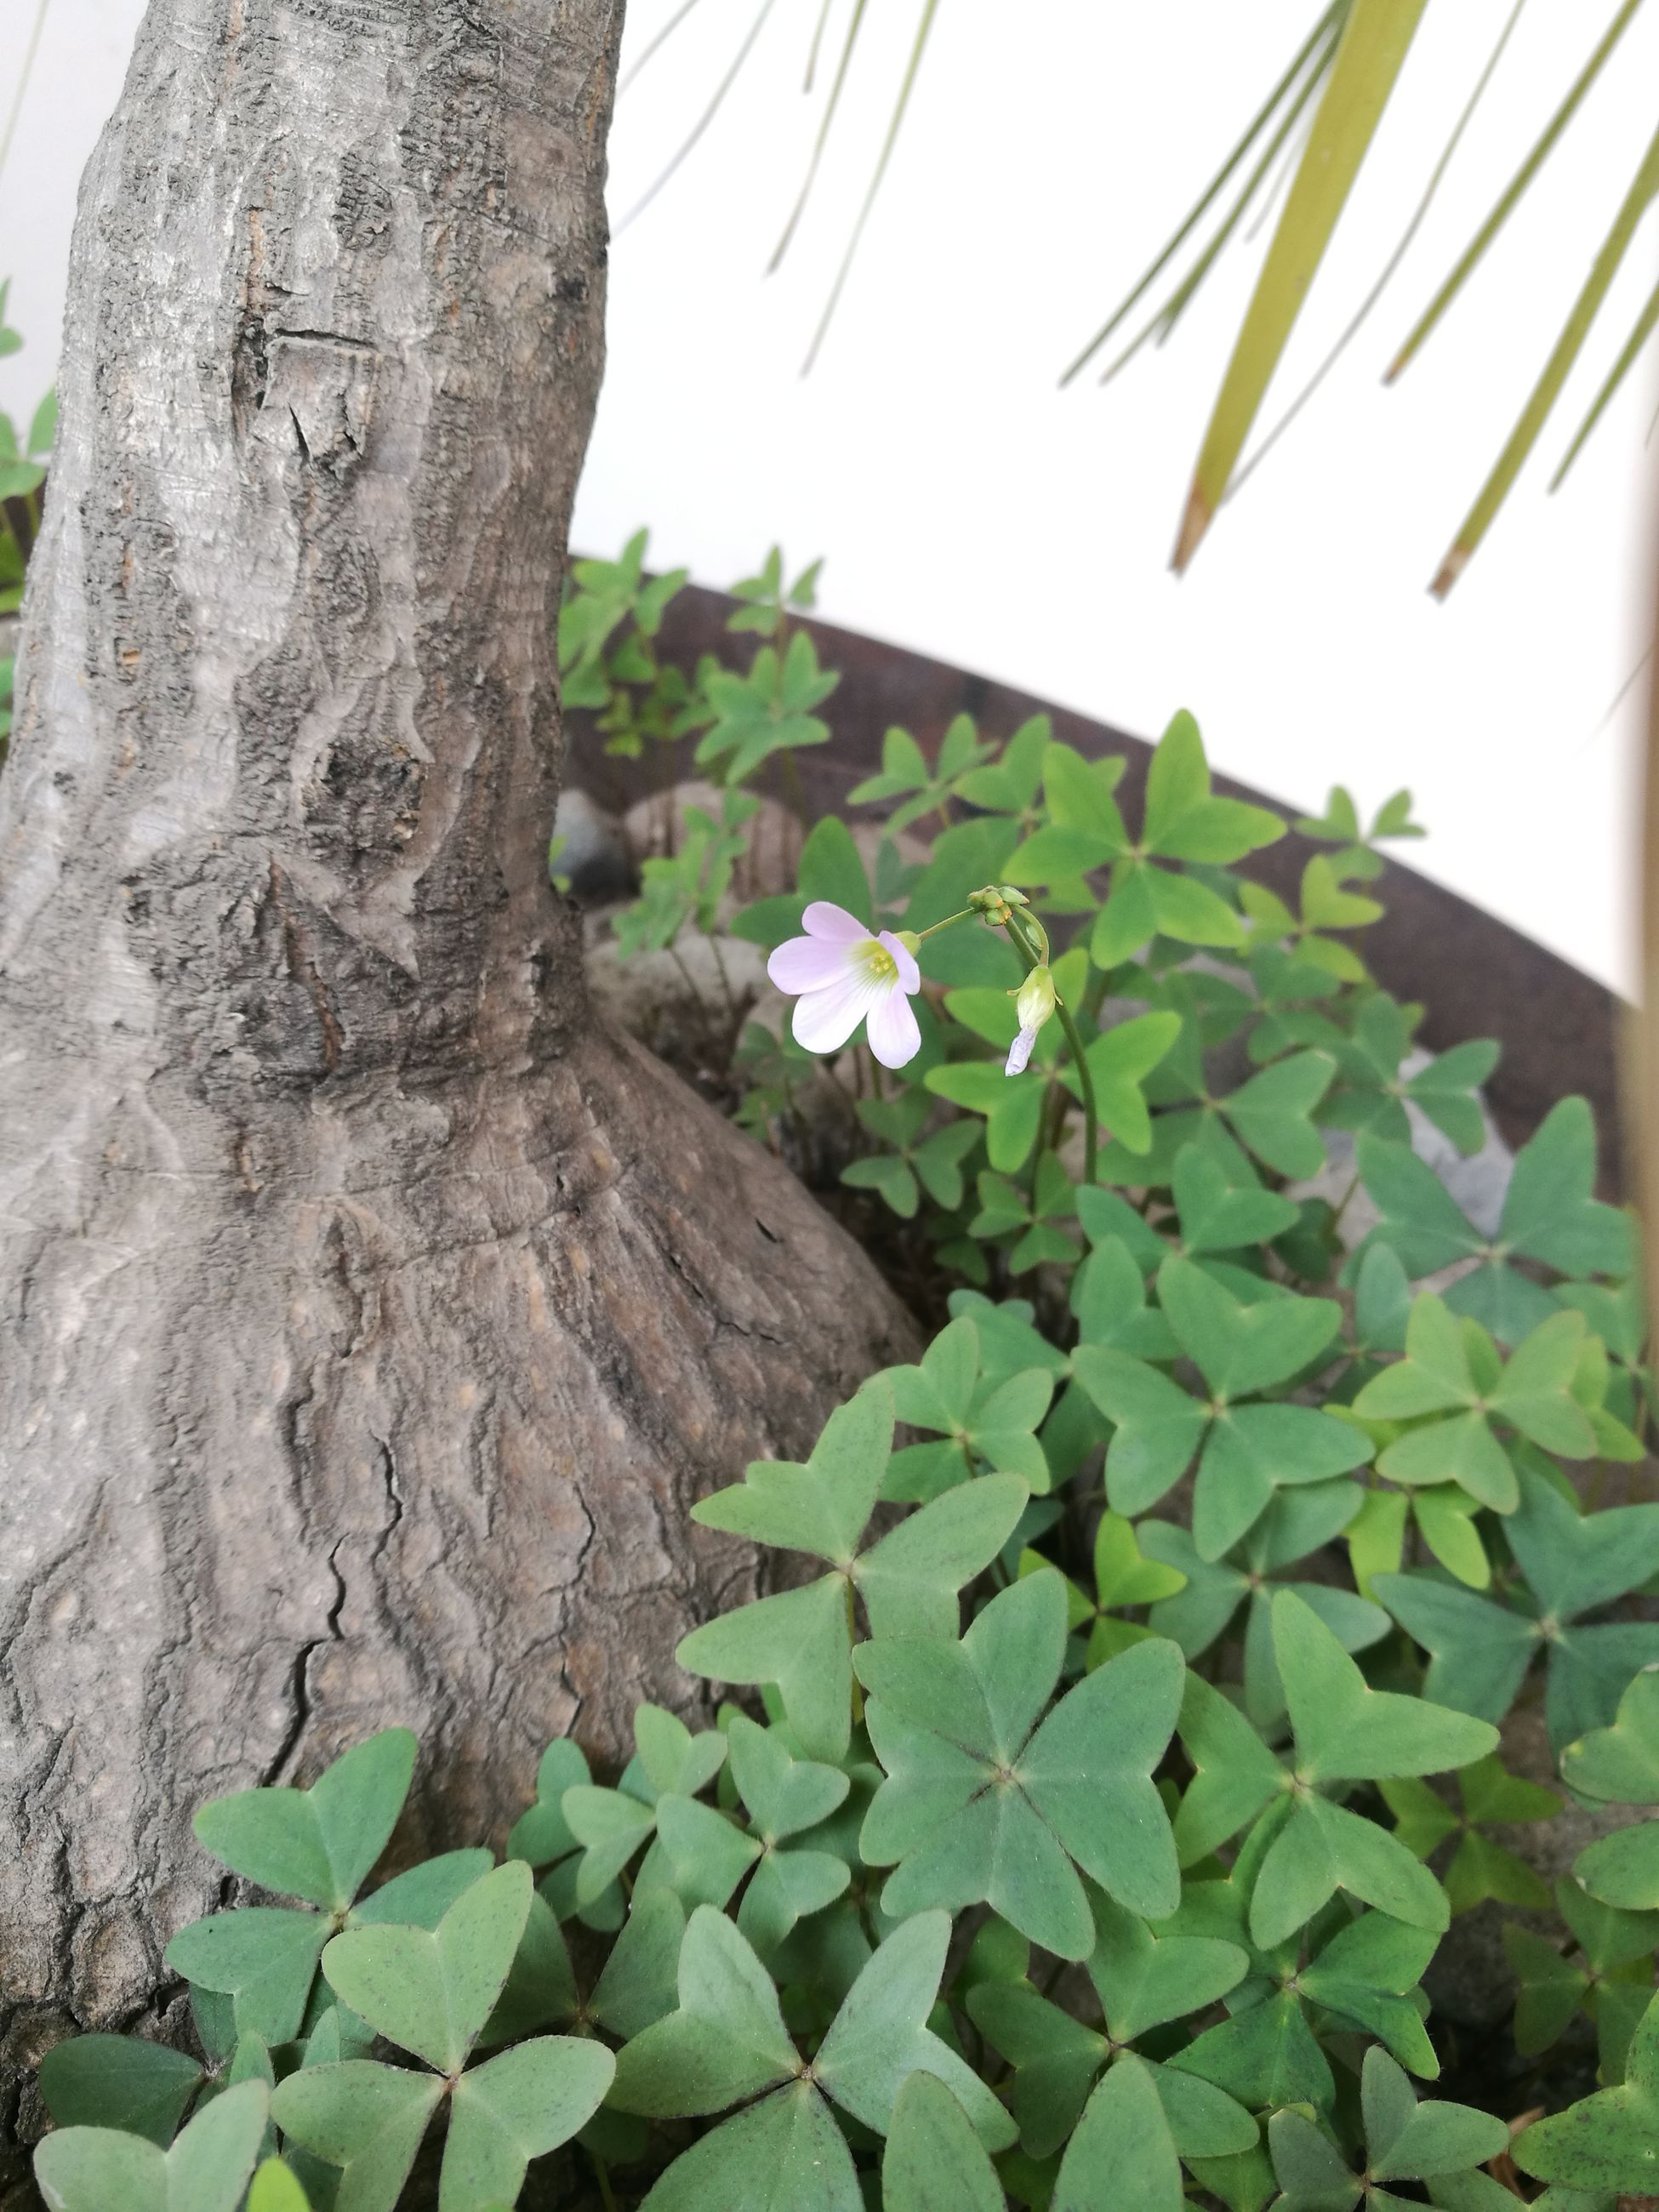 tree, growth, leaf, tree trunk, nature, plant, no people, day, green color, close-up, outdoors, beauty in nature, freshness, sky